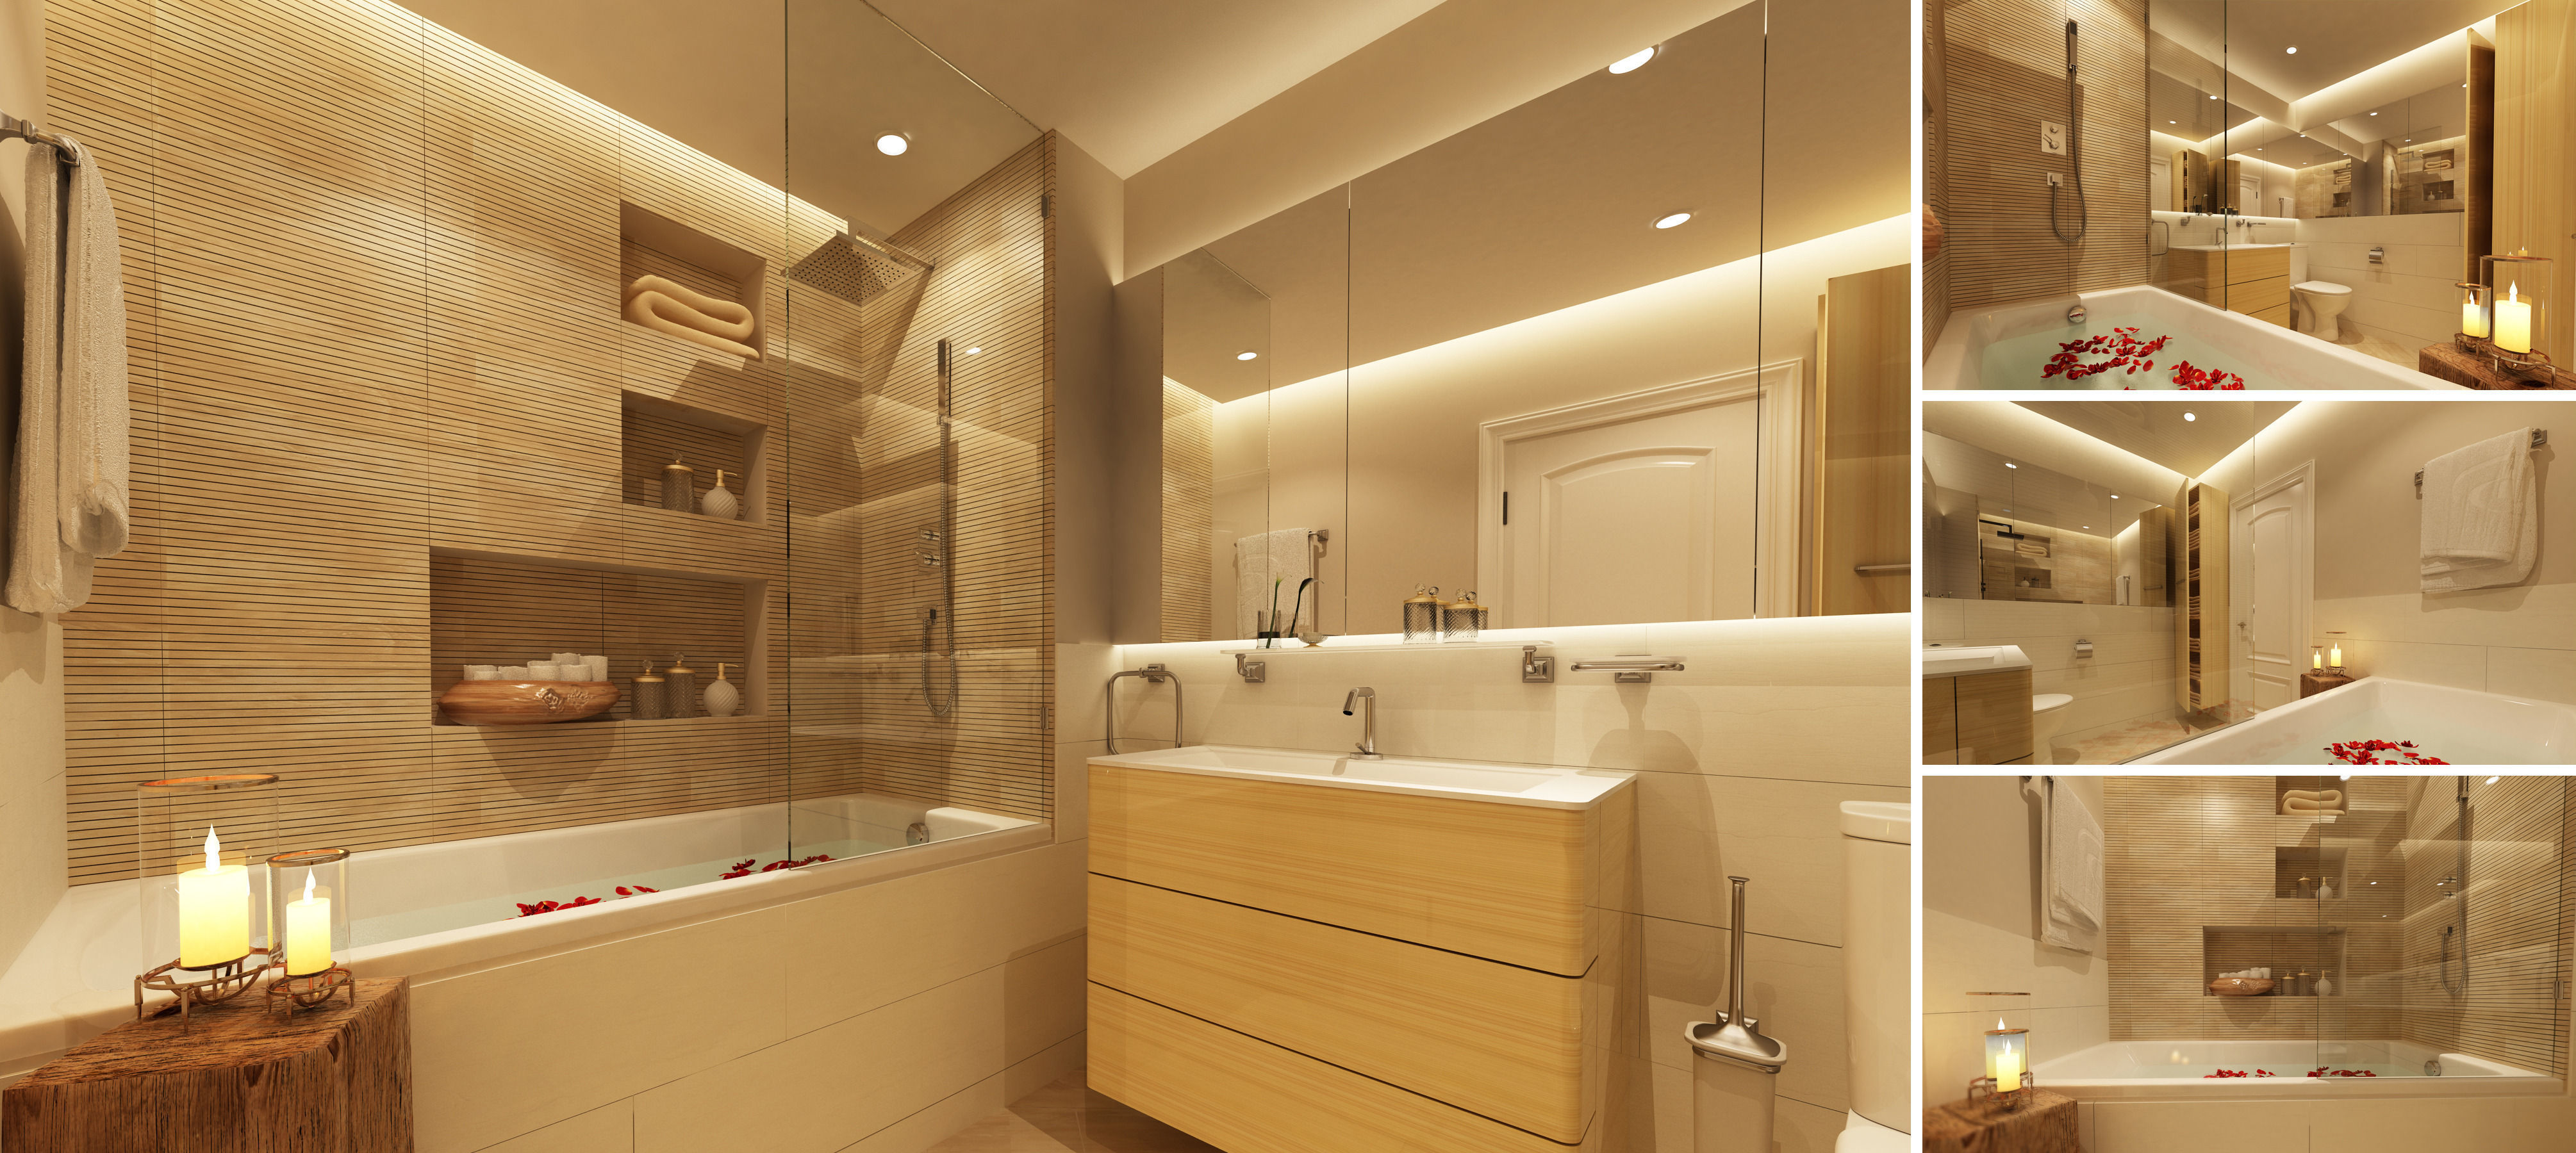 Bathroom Models bathroom model - home design